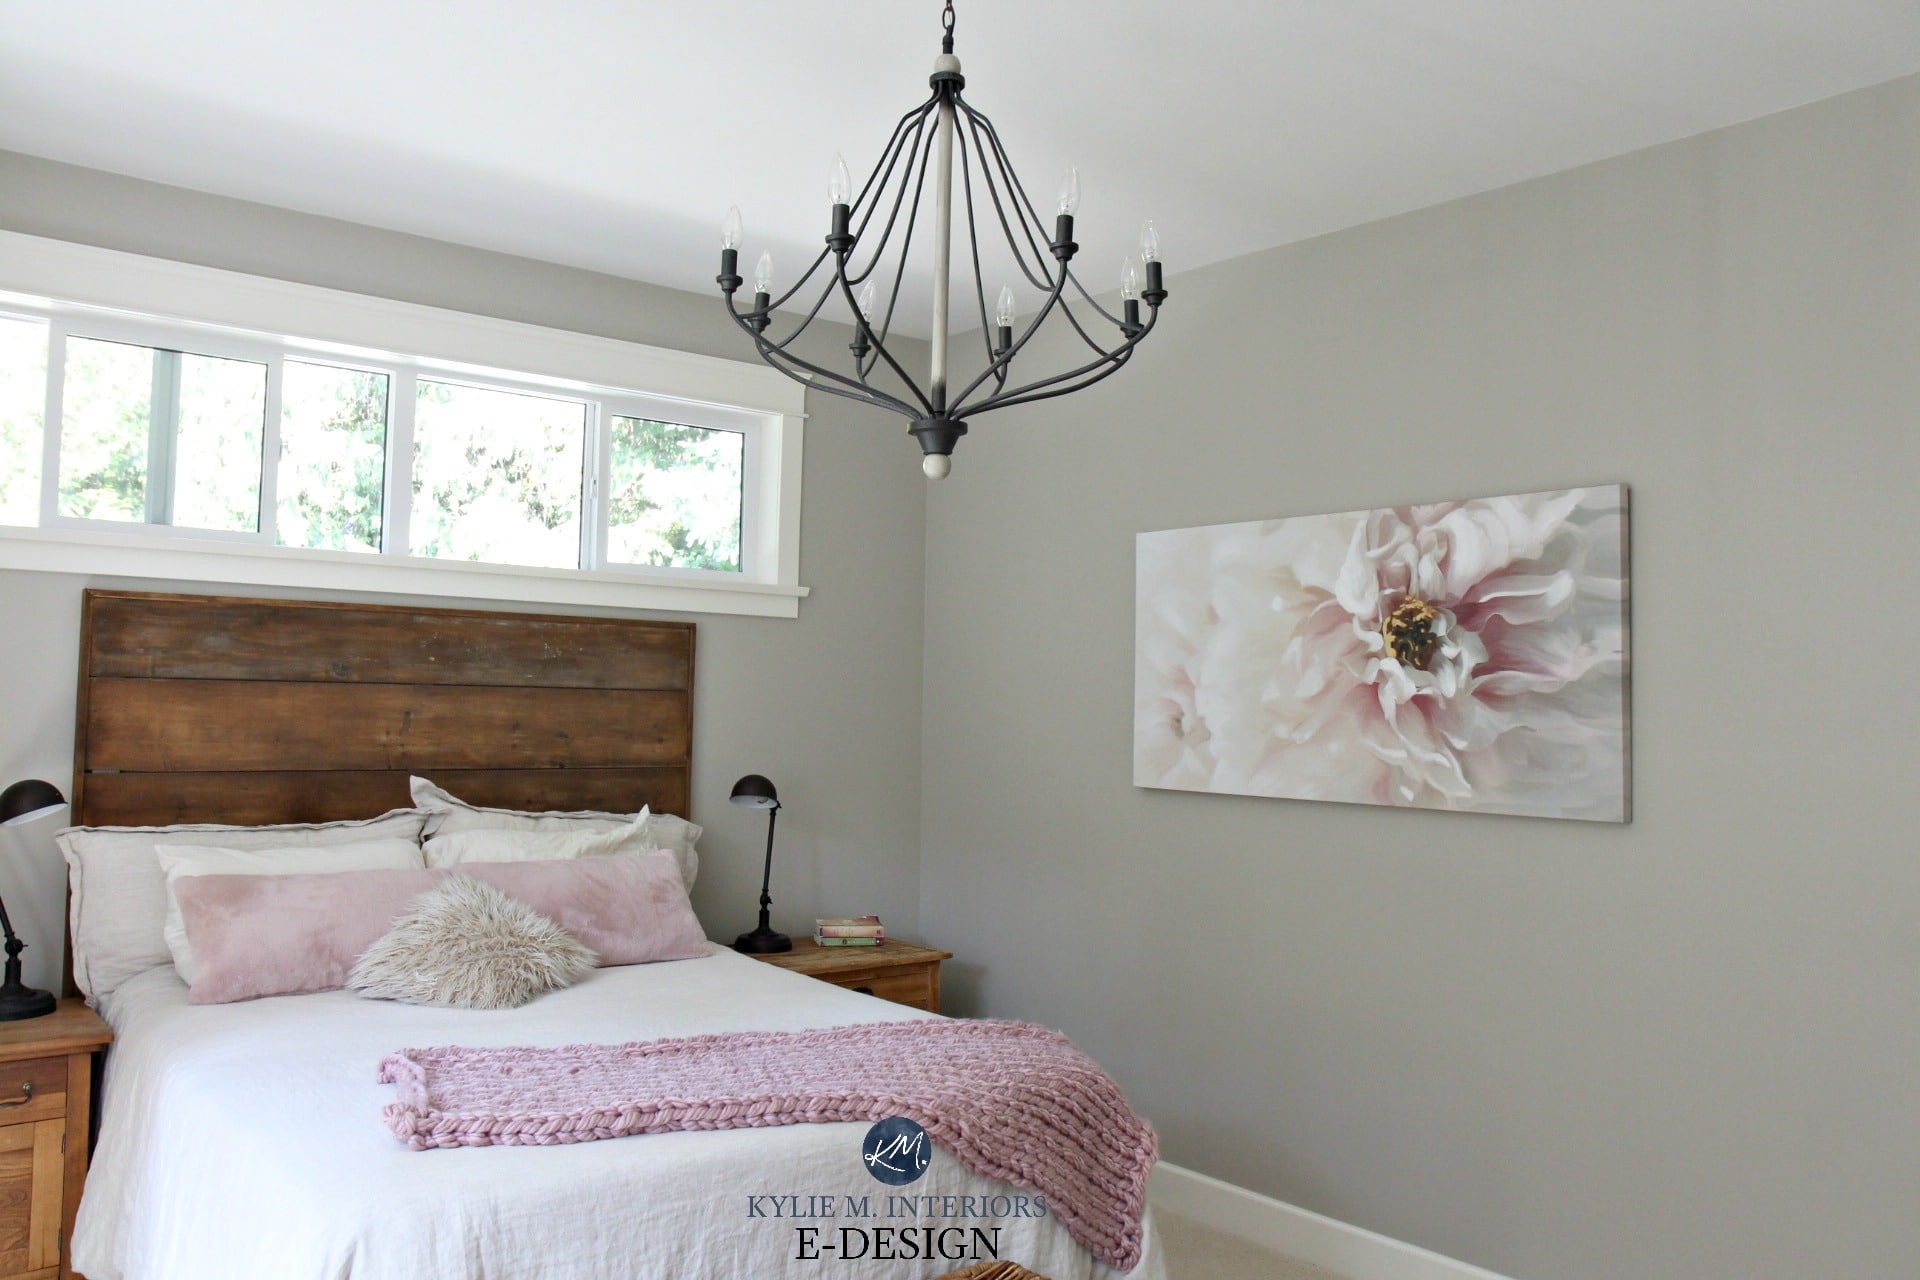 rustic romantic bedroom color schemes design ideas | Rustic romantic style bedroom with reclaimed wood ...